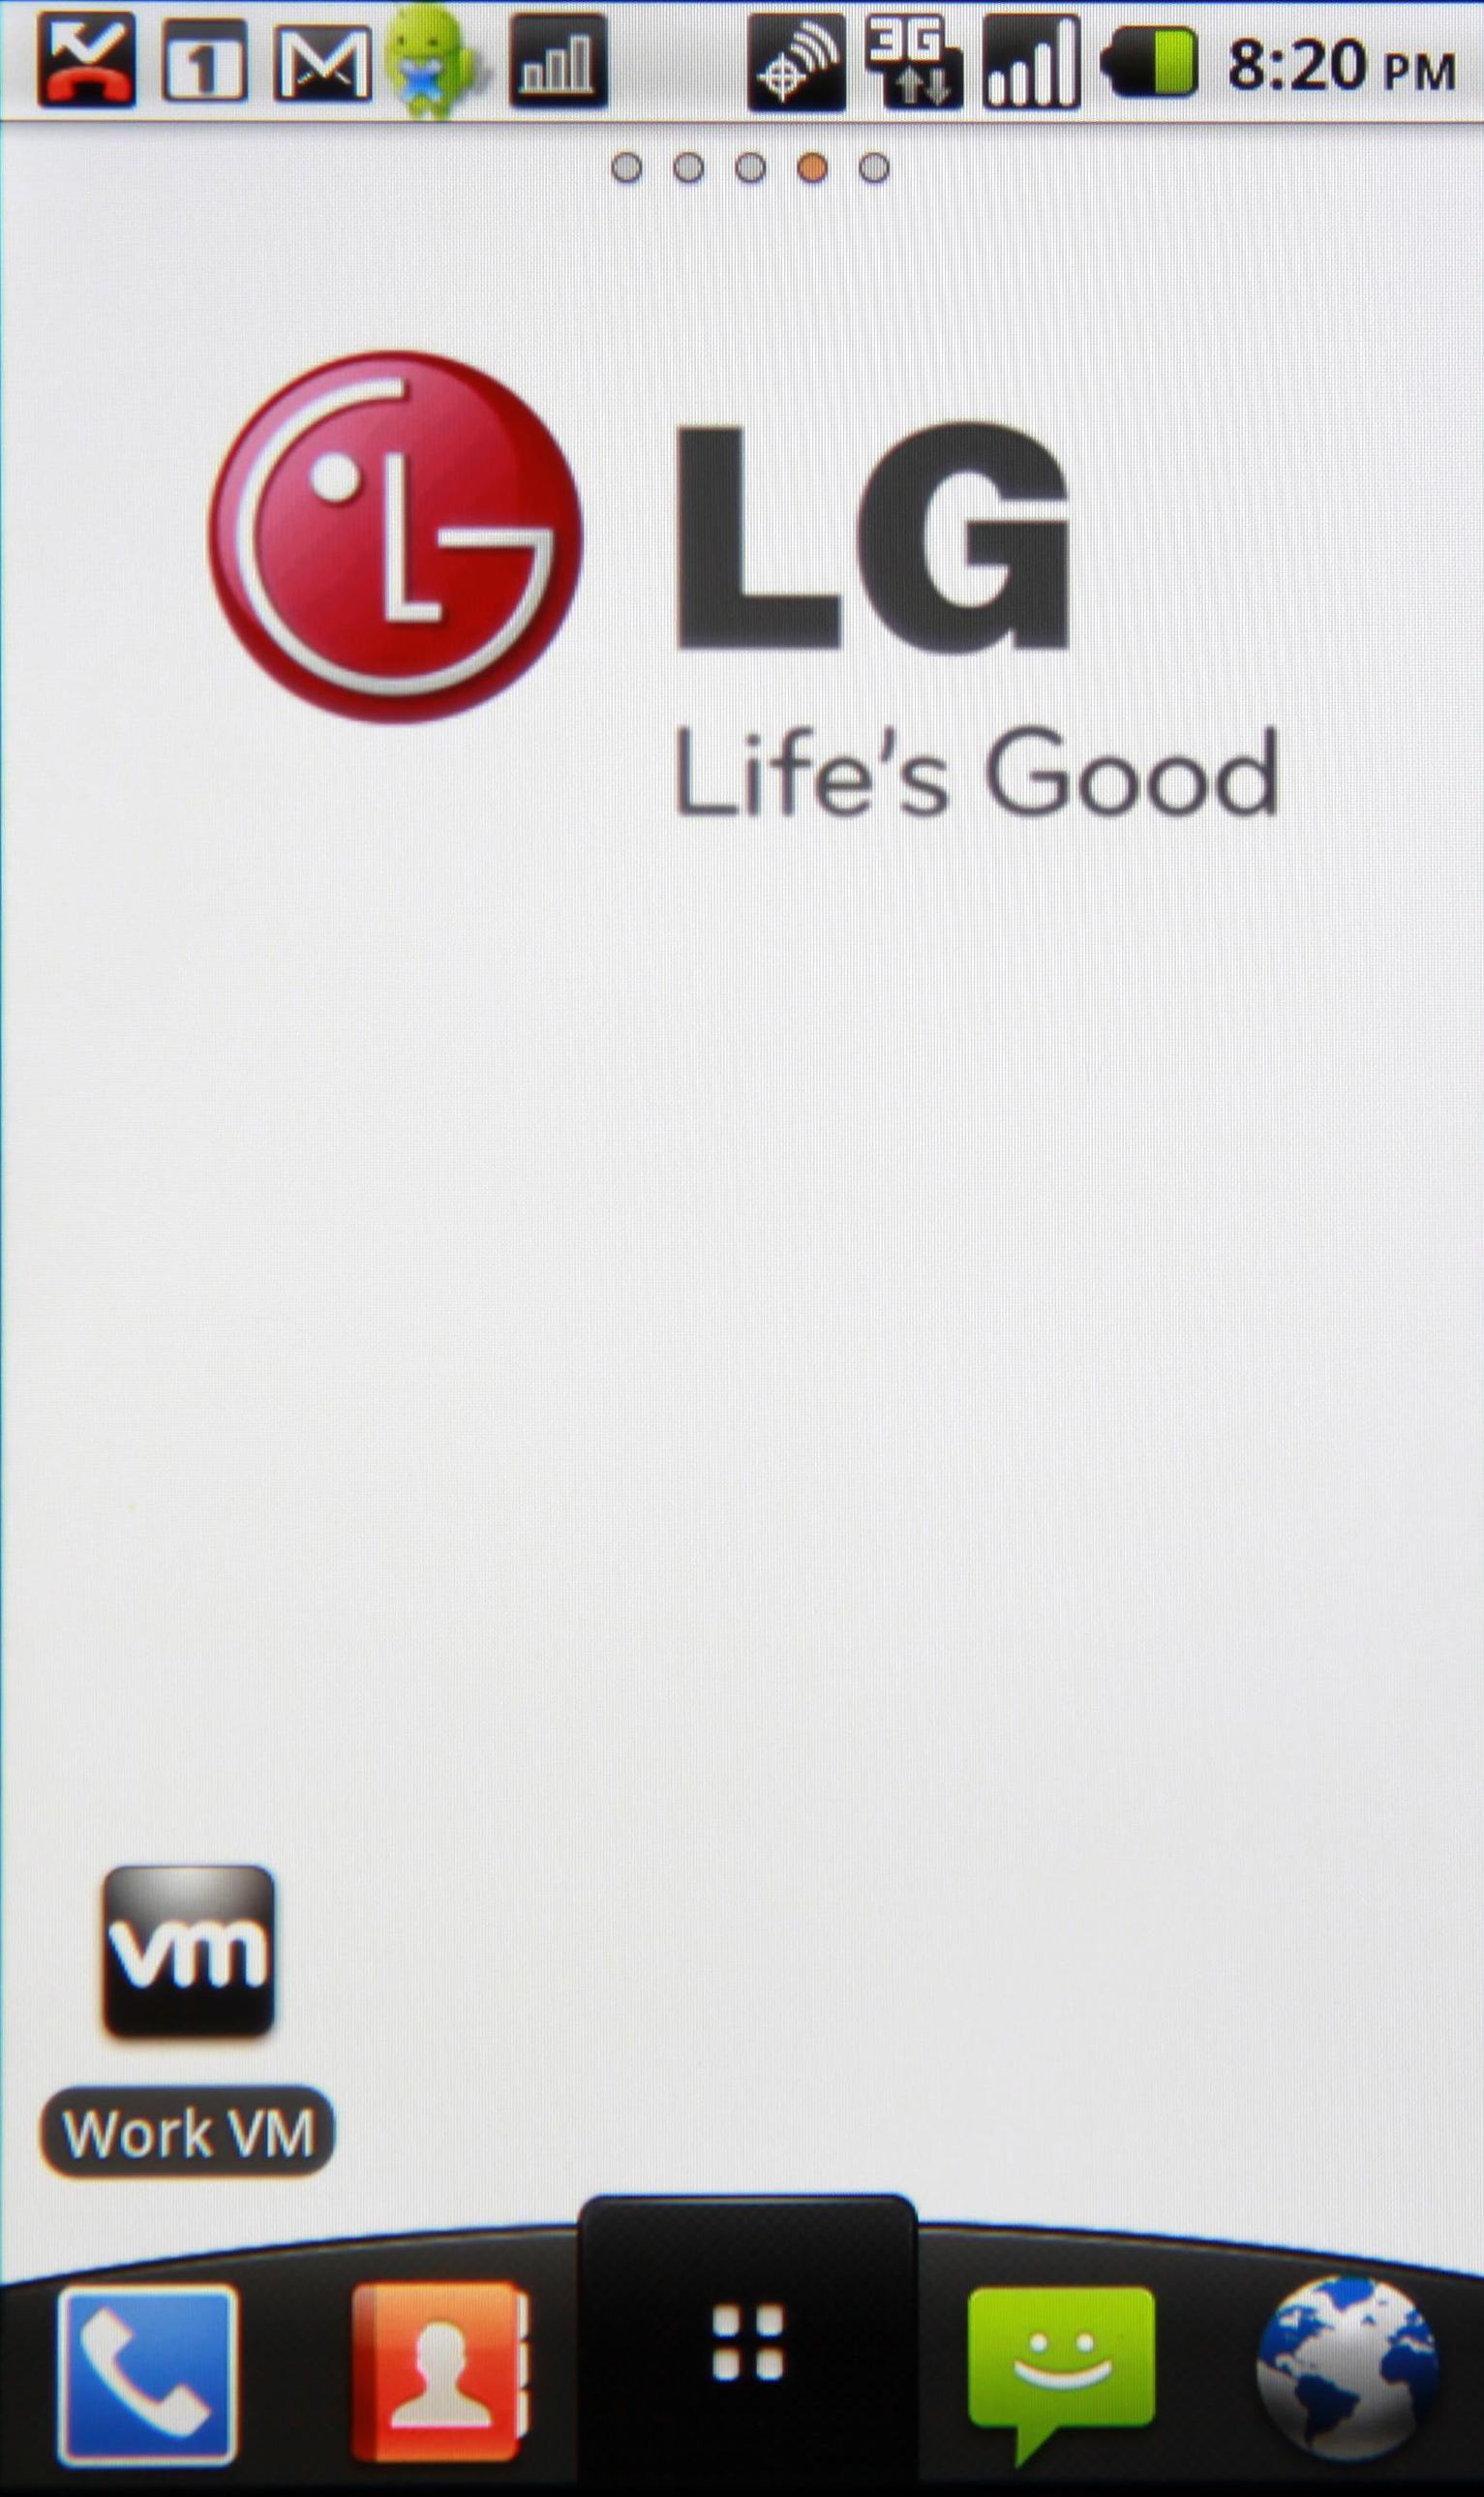 The VMware application icon on an LG smartphone's home screen.